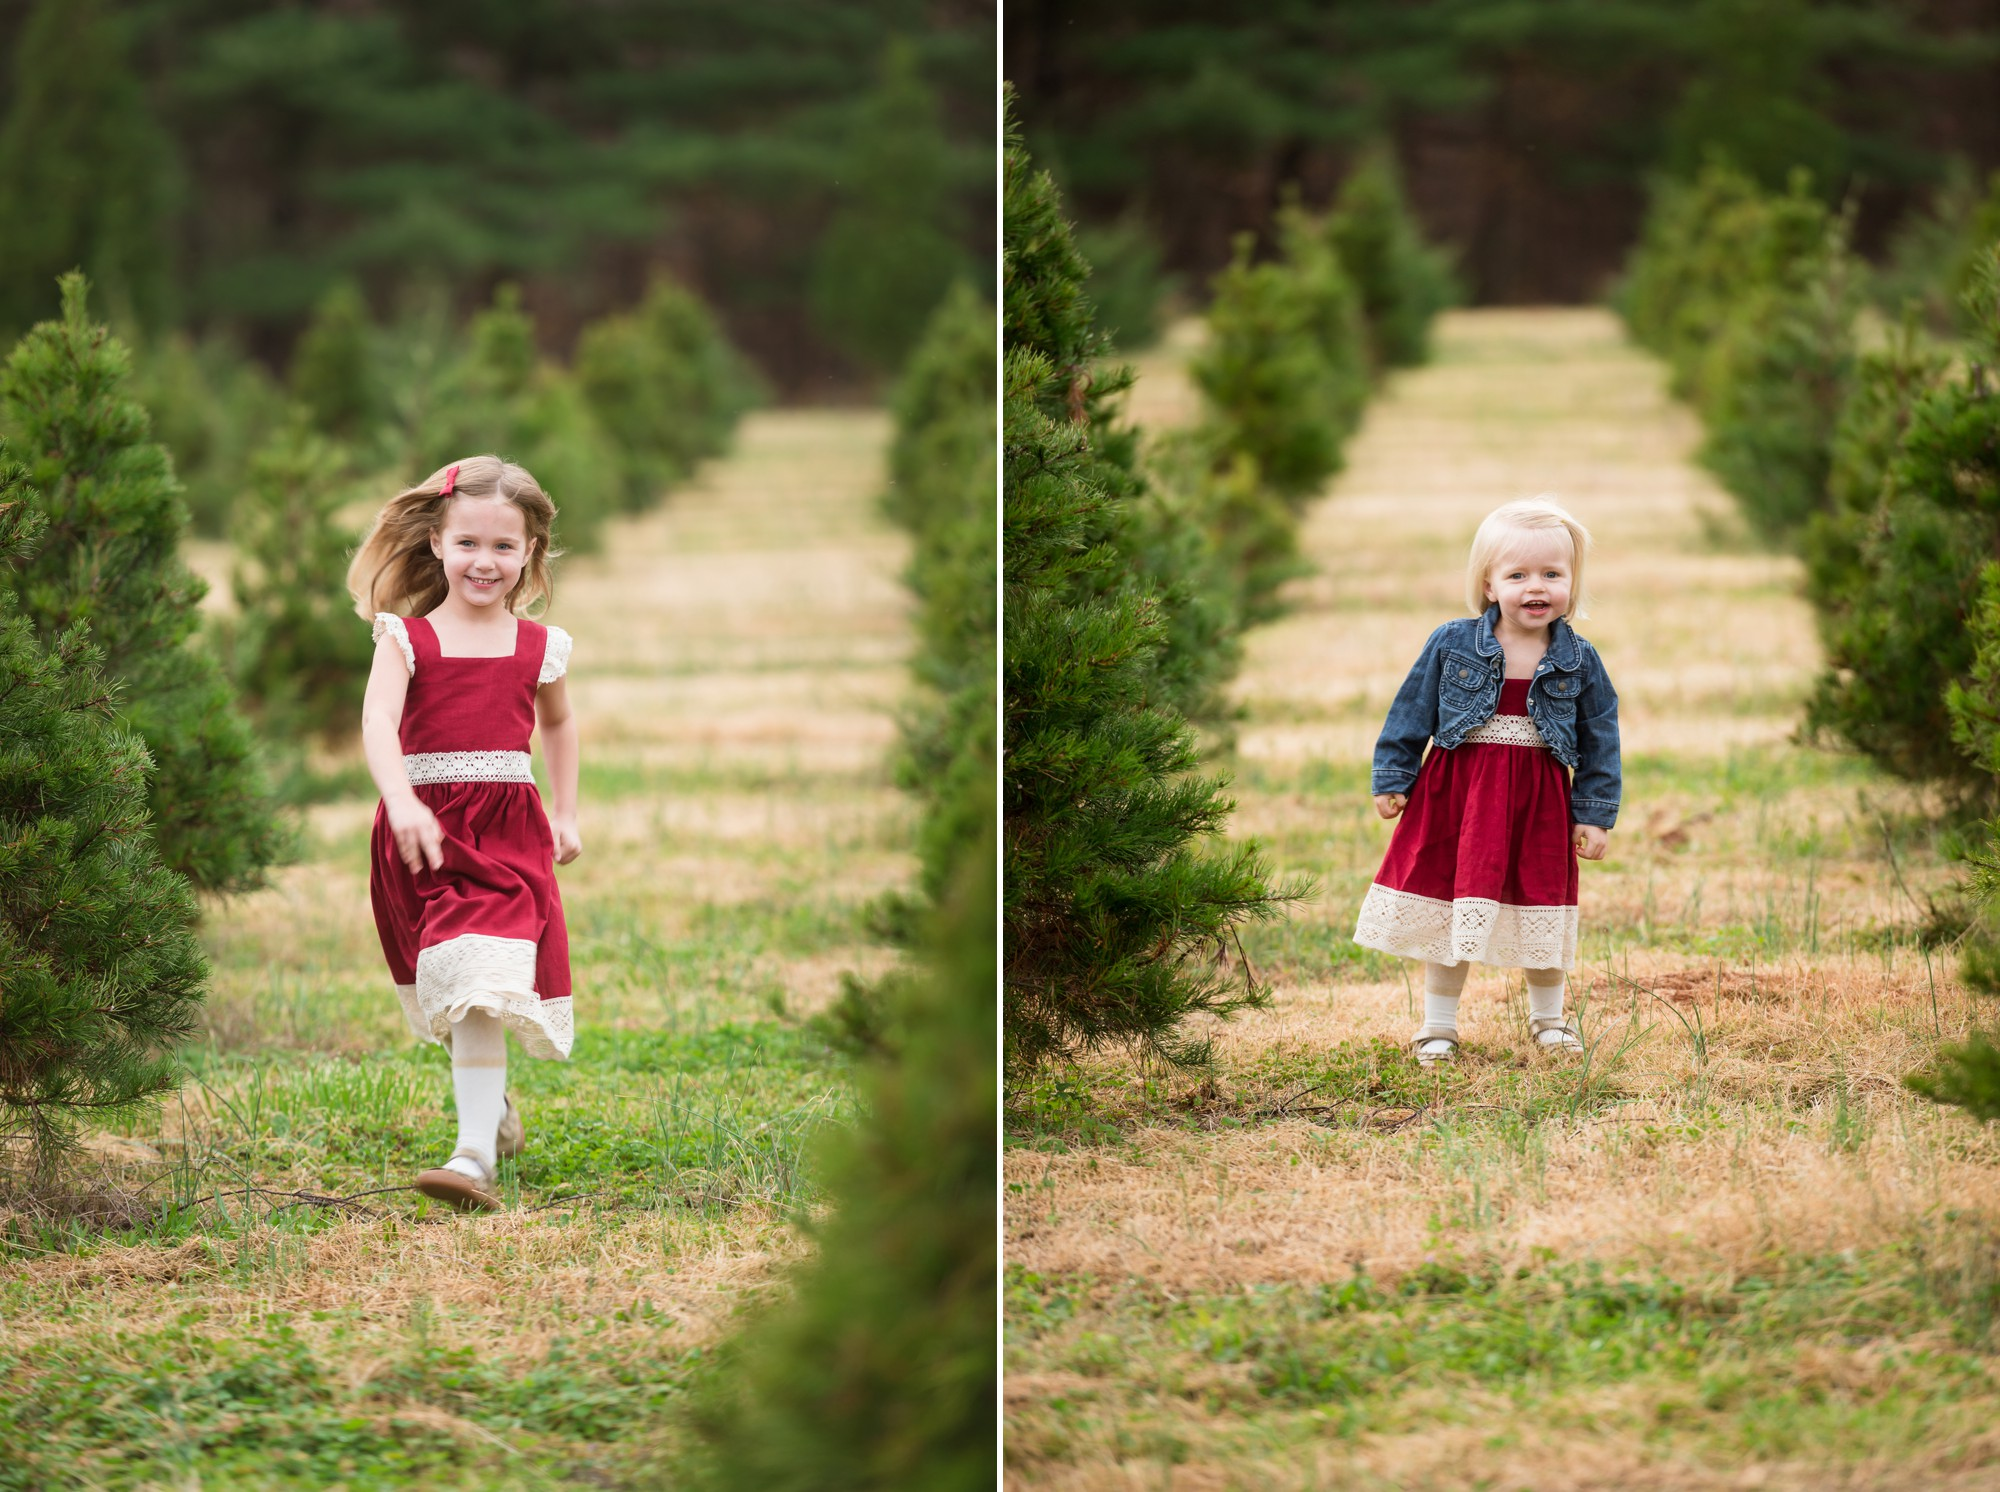 Christmas Tree Farm Photography.Christmas Tree Farm Family Sessions Charlotte Lifestyle